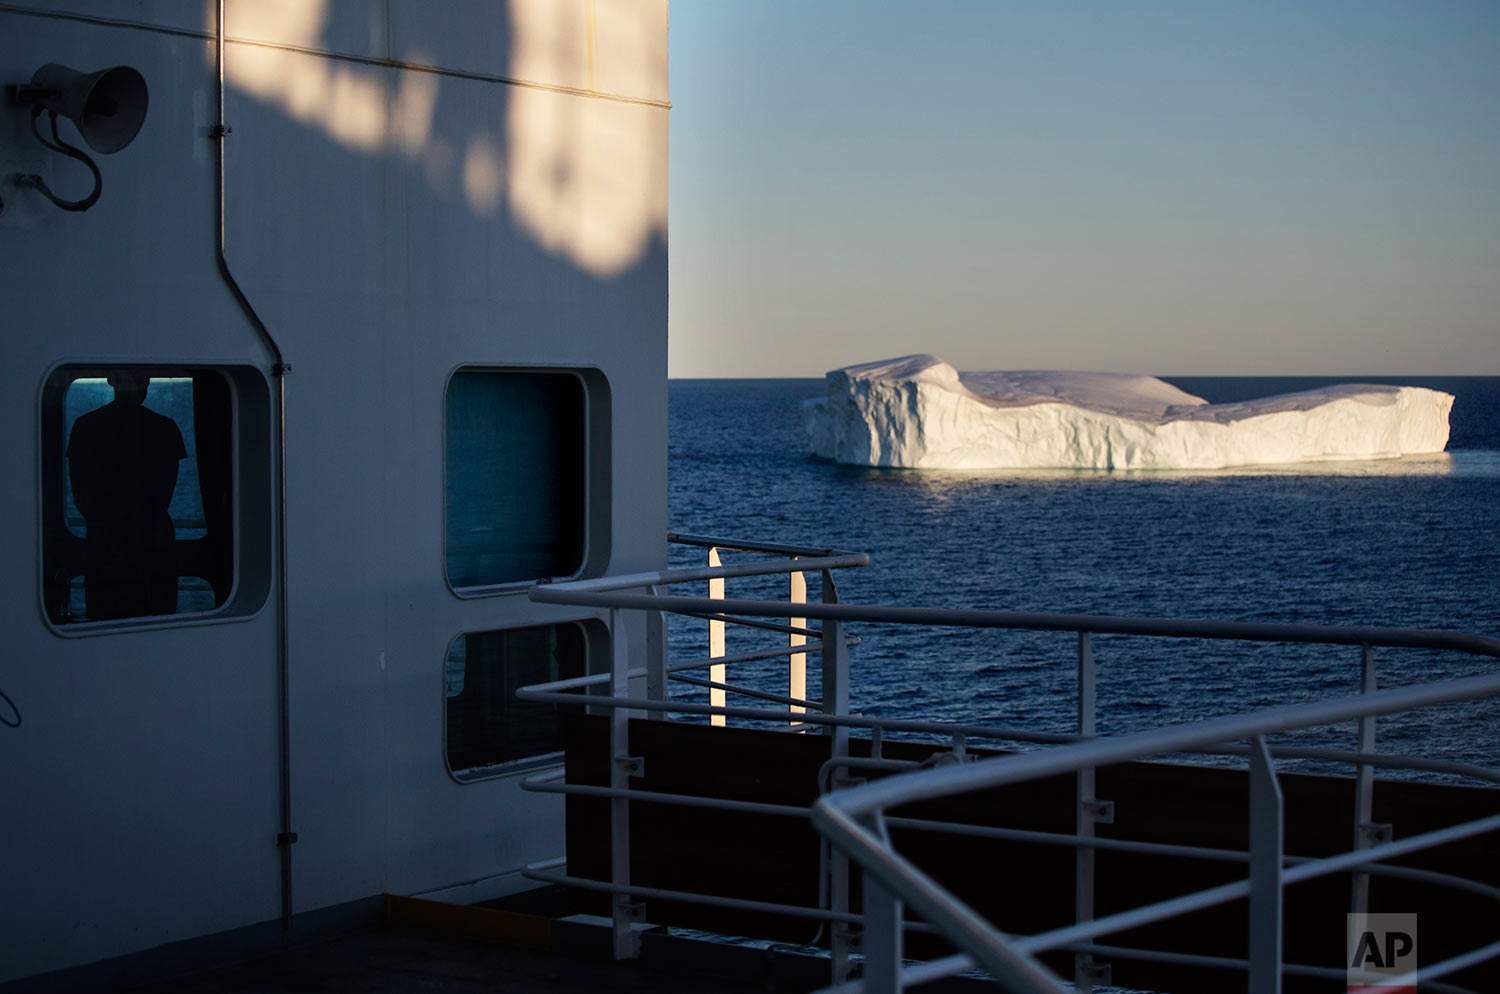 Trainee David Kullualik, left, looks out a window of the Finnish icebreaker MSV Nordica at an iceberg floating in Baffin Bay in the Canadian Arctic Archipelago, Tuesday, July 25, 2017. (AP Photo/David Goldman)